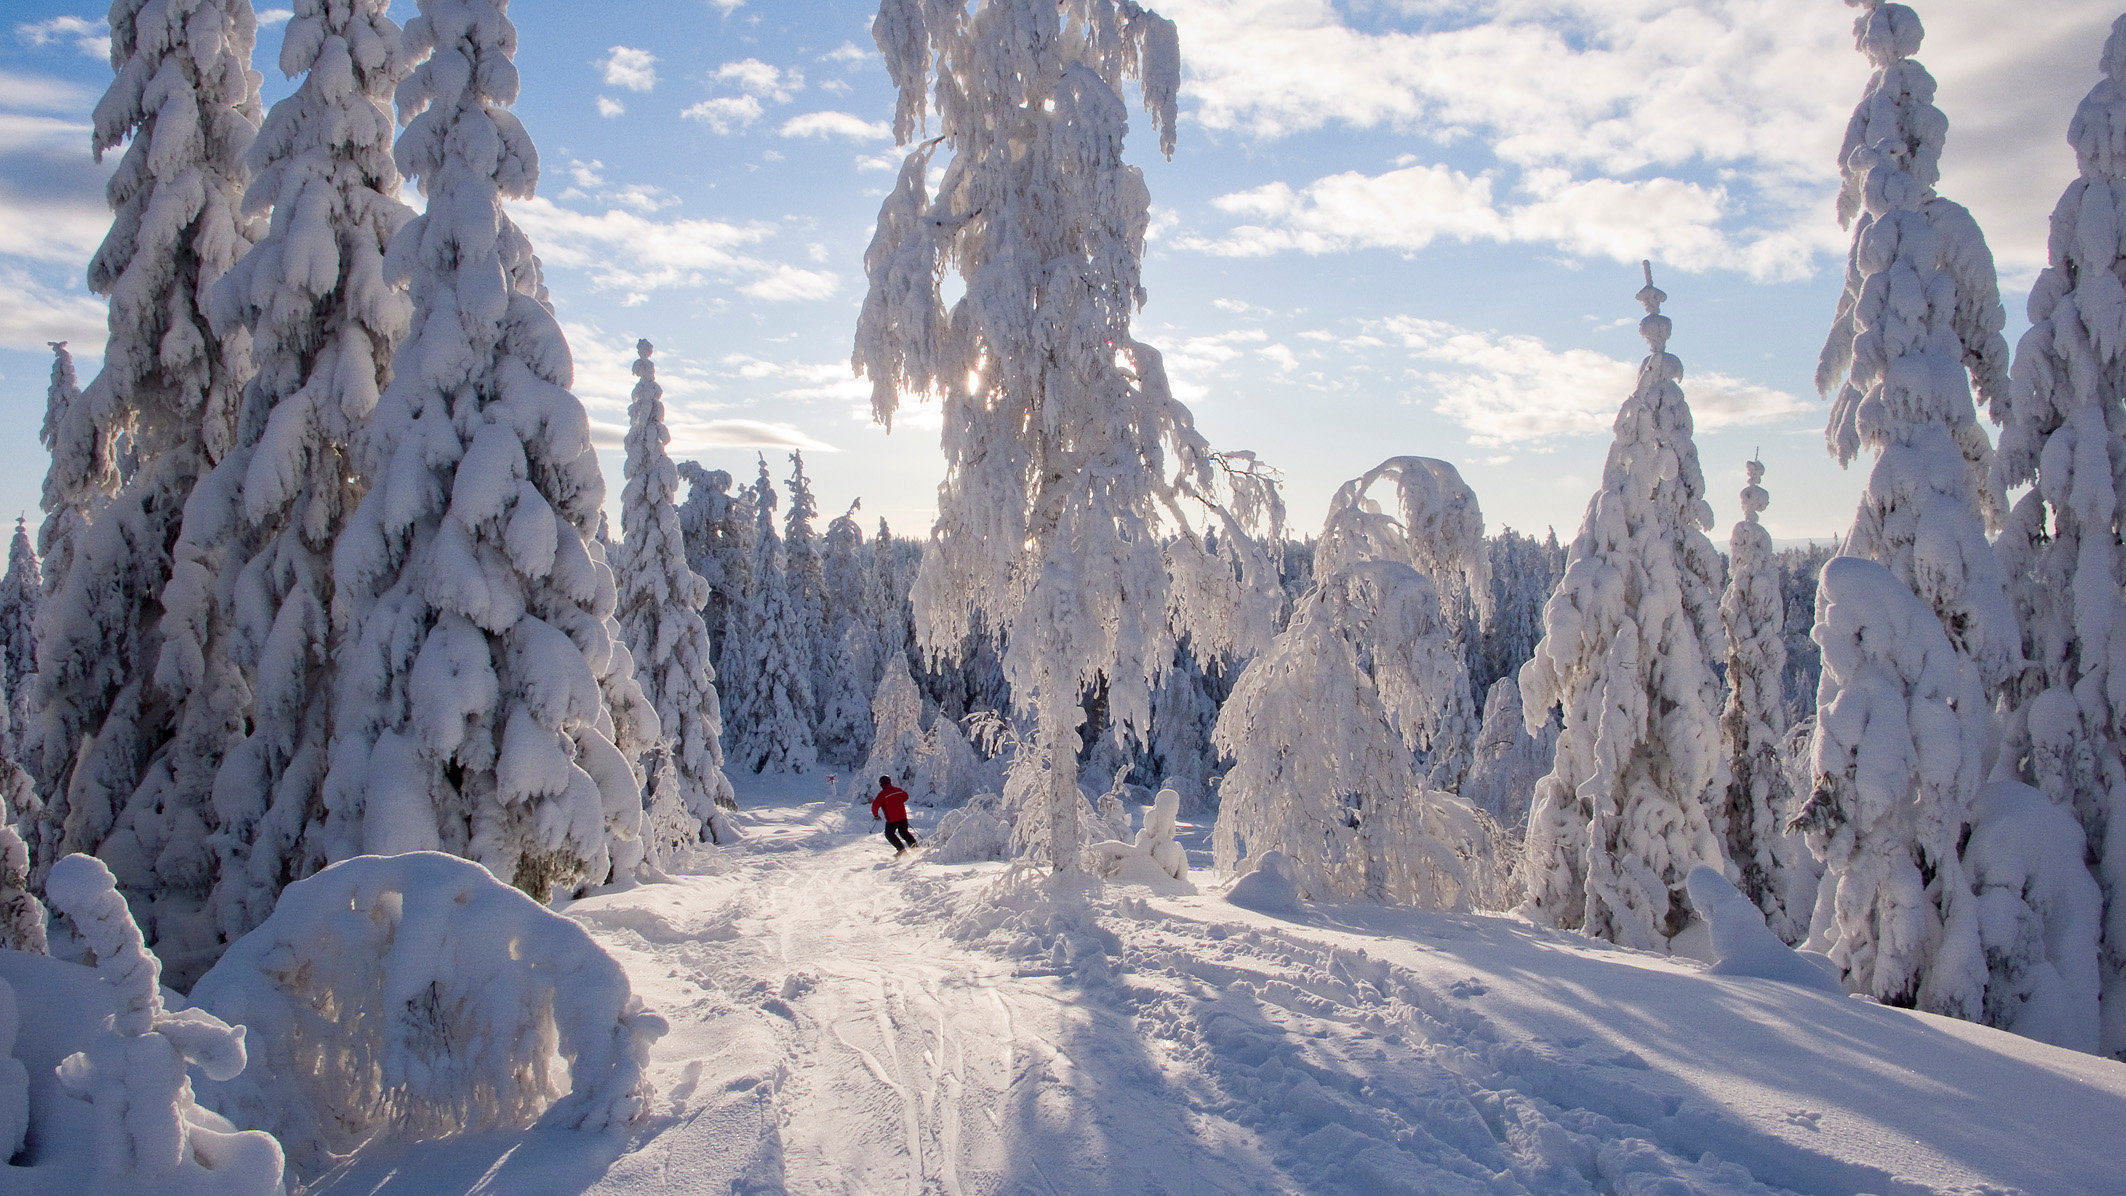 Skiing in Sweden